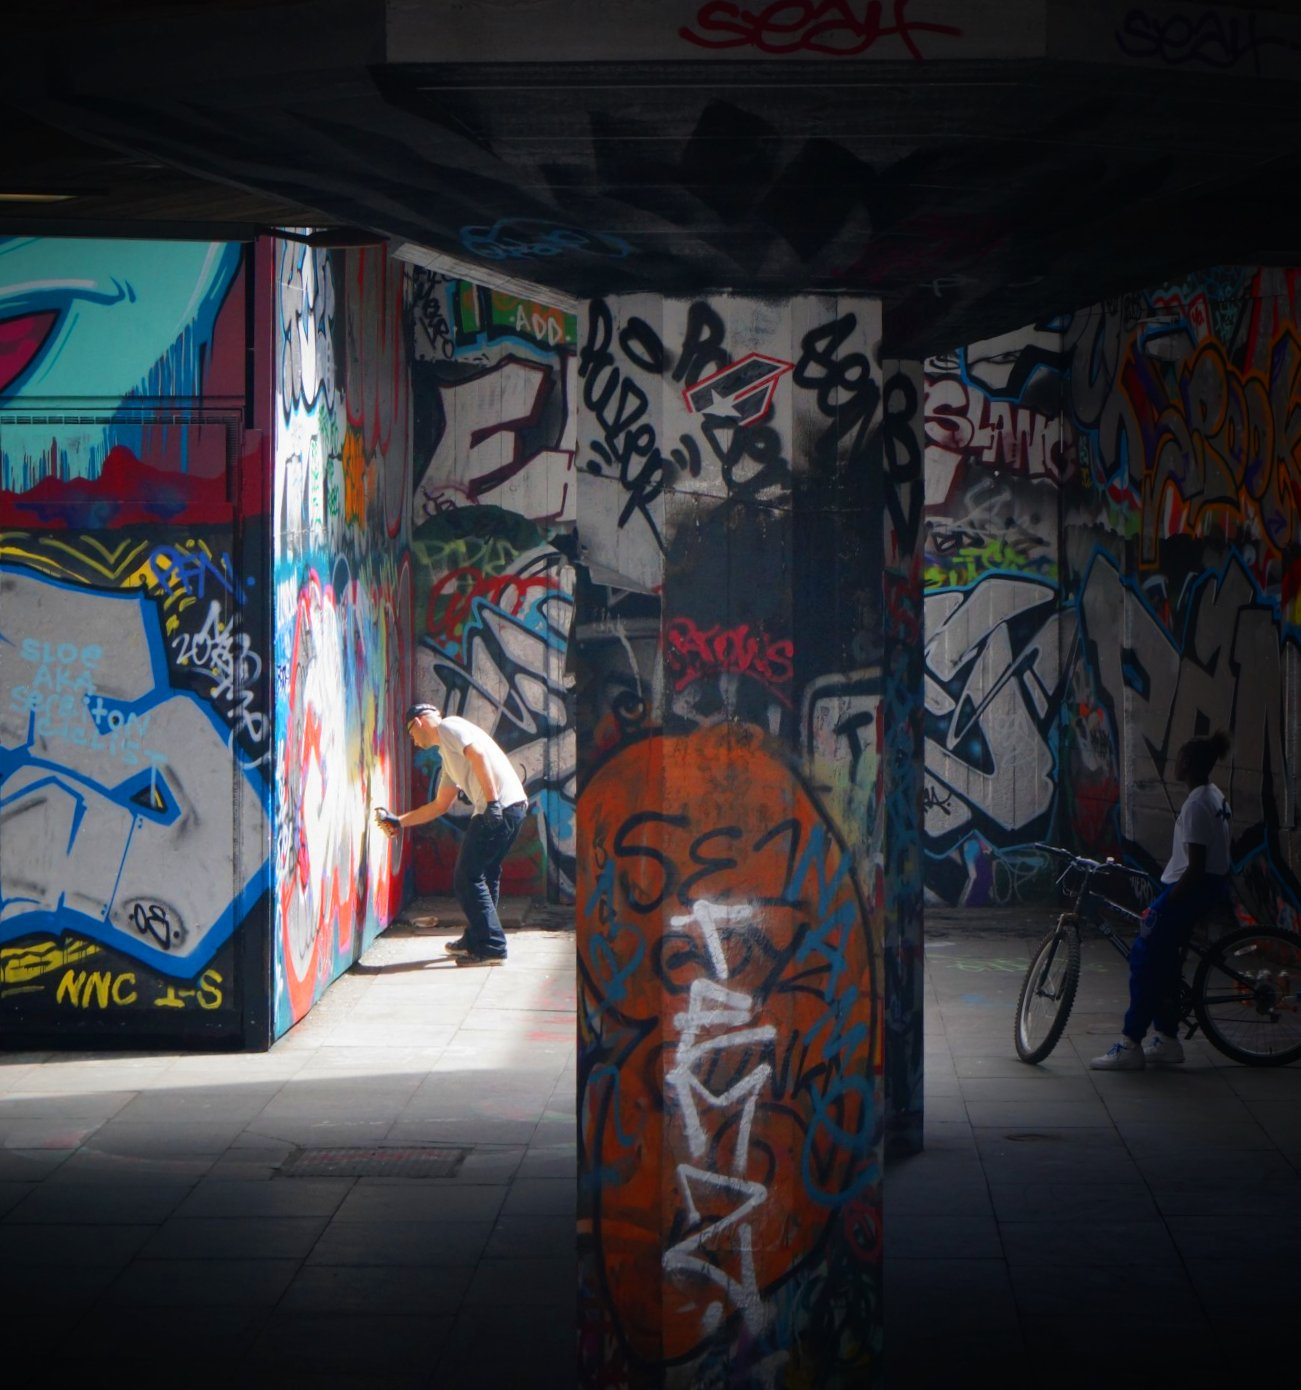 South Bank skate space in London, United Kingdom